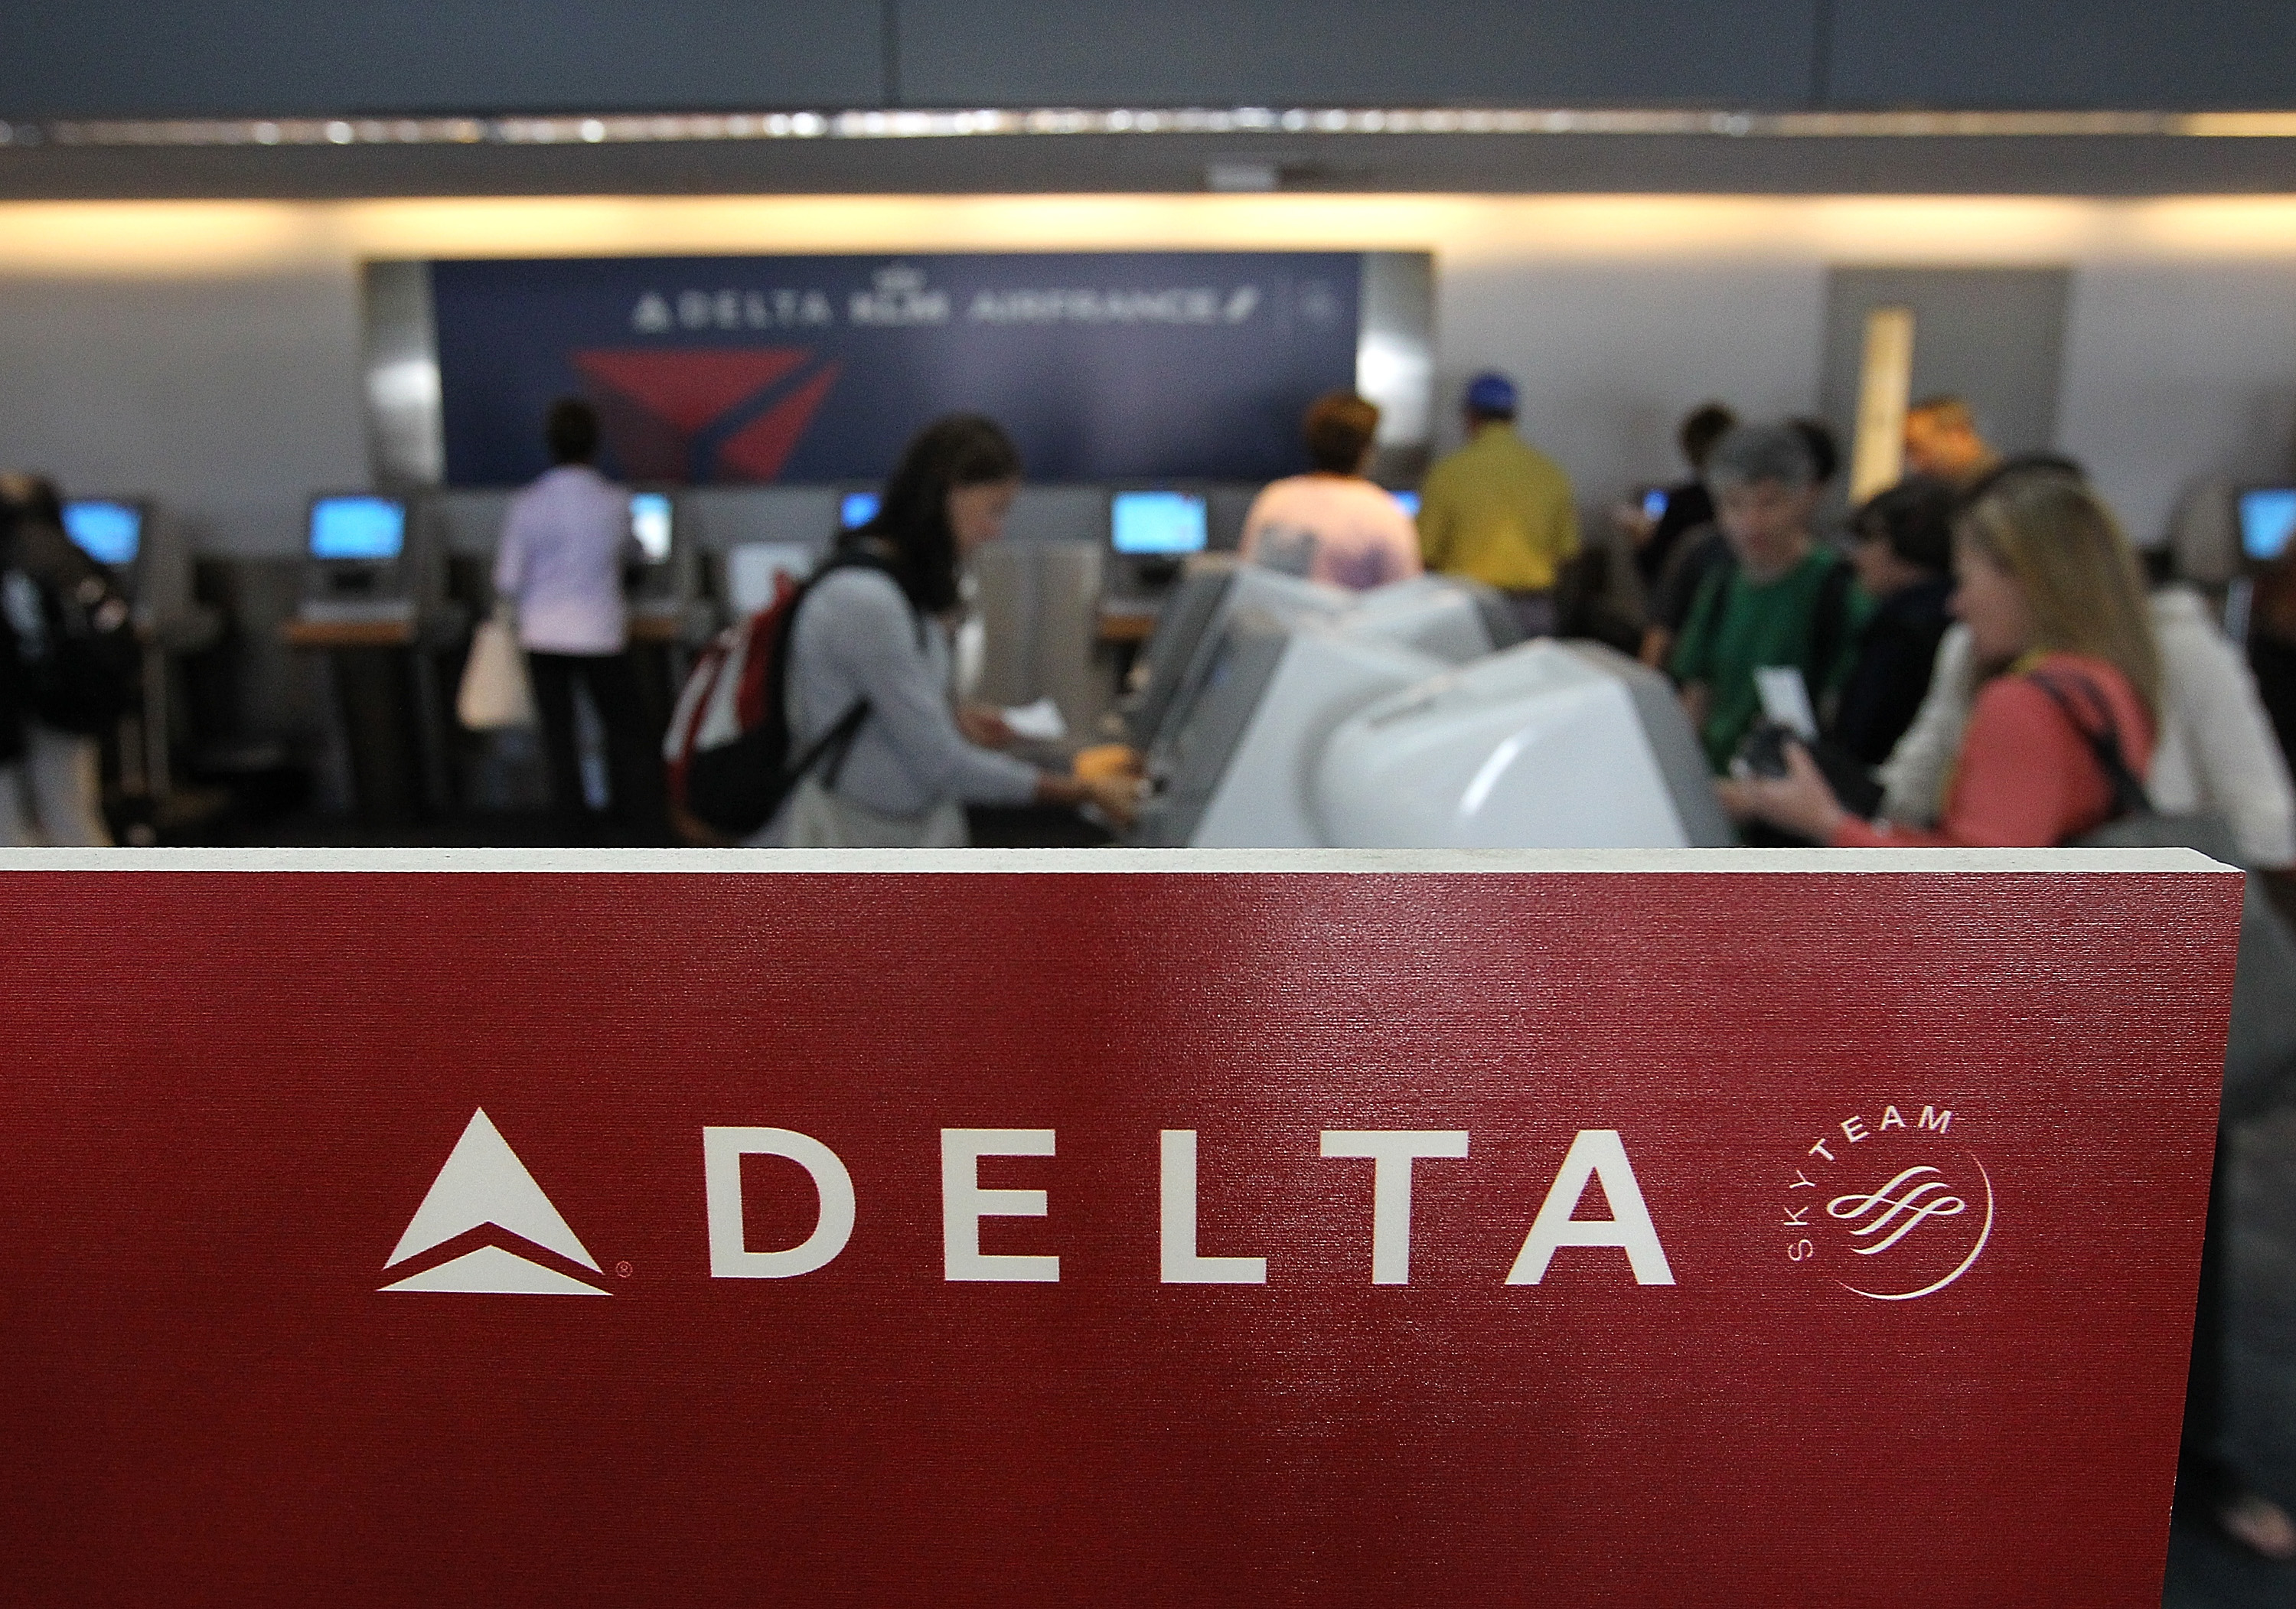 Delta Air Lines passengers use kiosks to check in for flights at San Francisco International Airport in California.